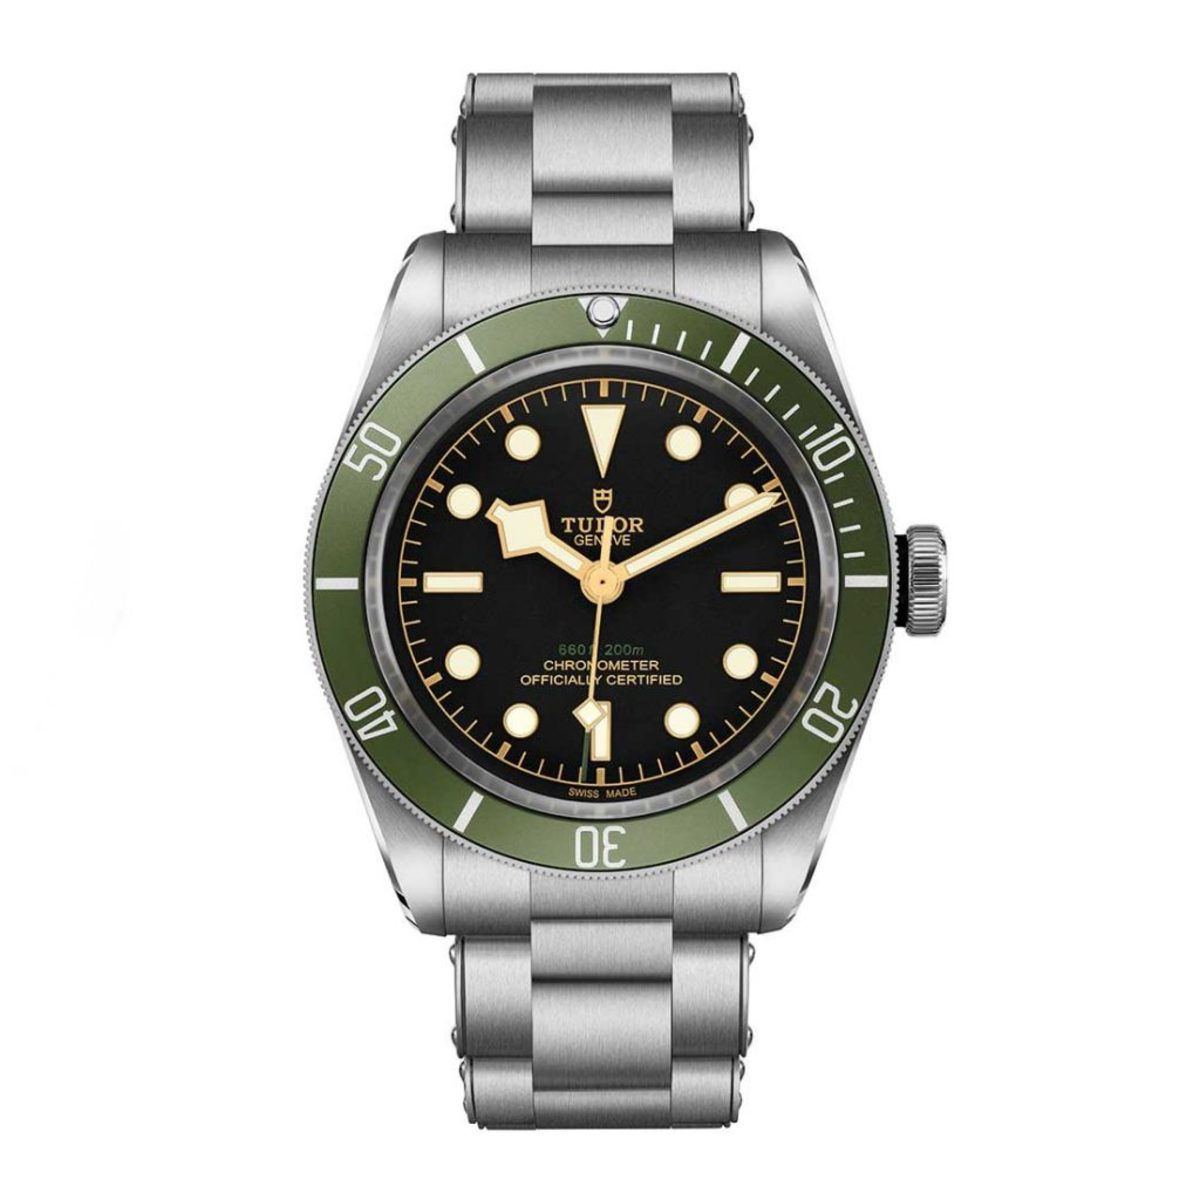 Tudor Black Bay for Harrods